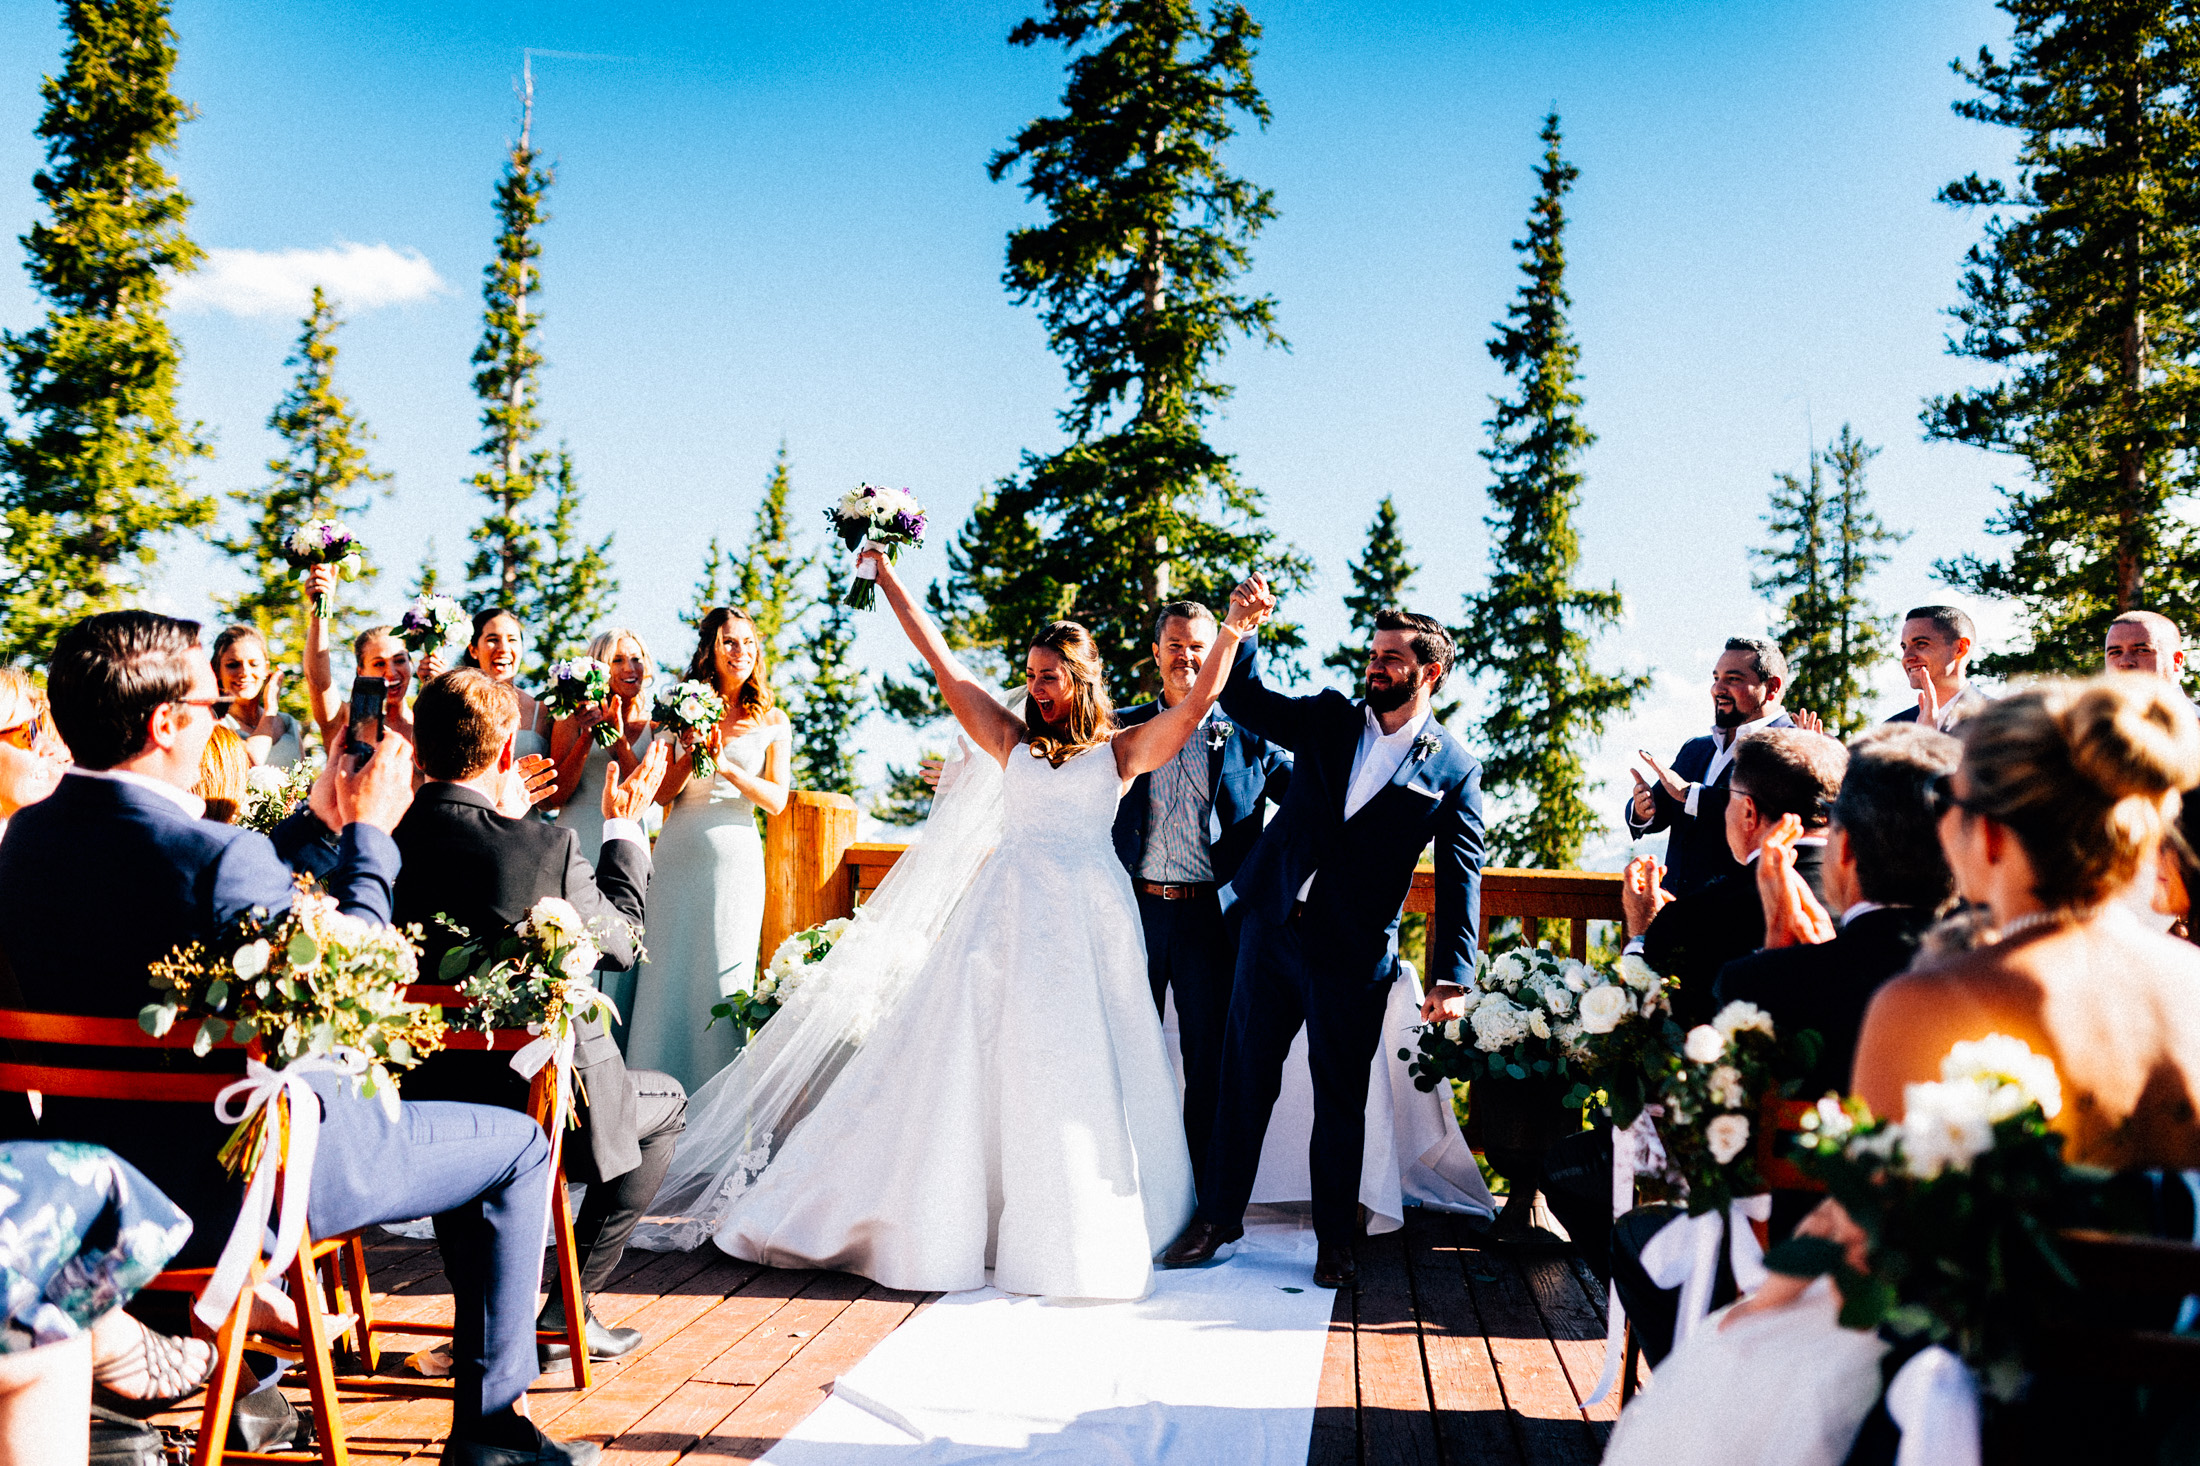 Bride and groom at the altar raise their hands in celebration.